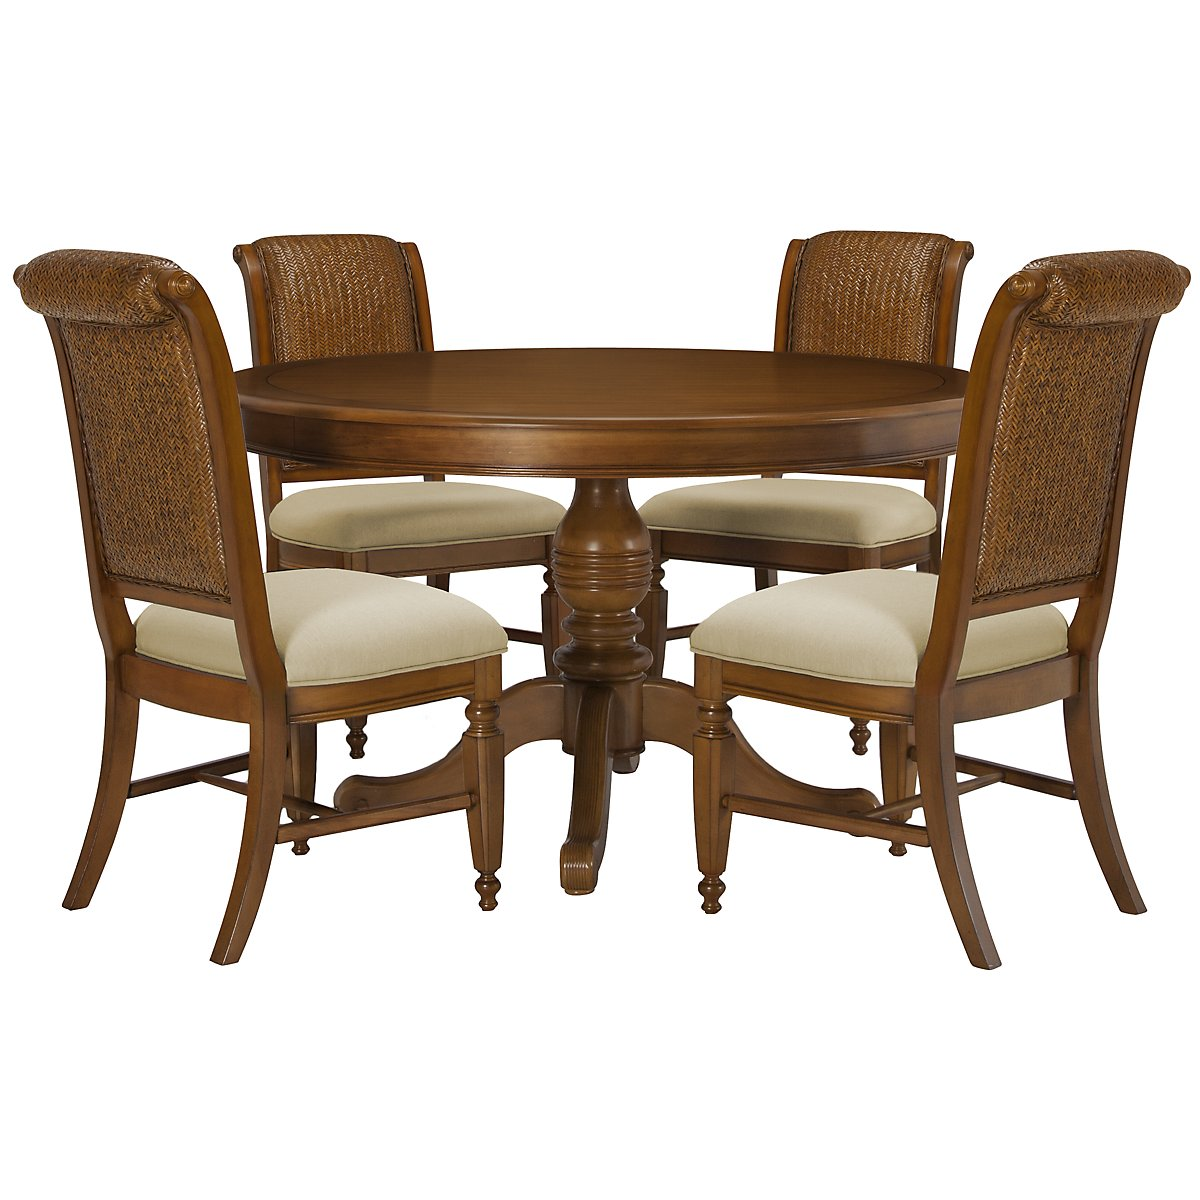 Claire Mid Tone Round Table & 4 Woven Chairs